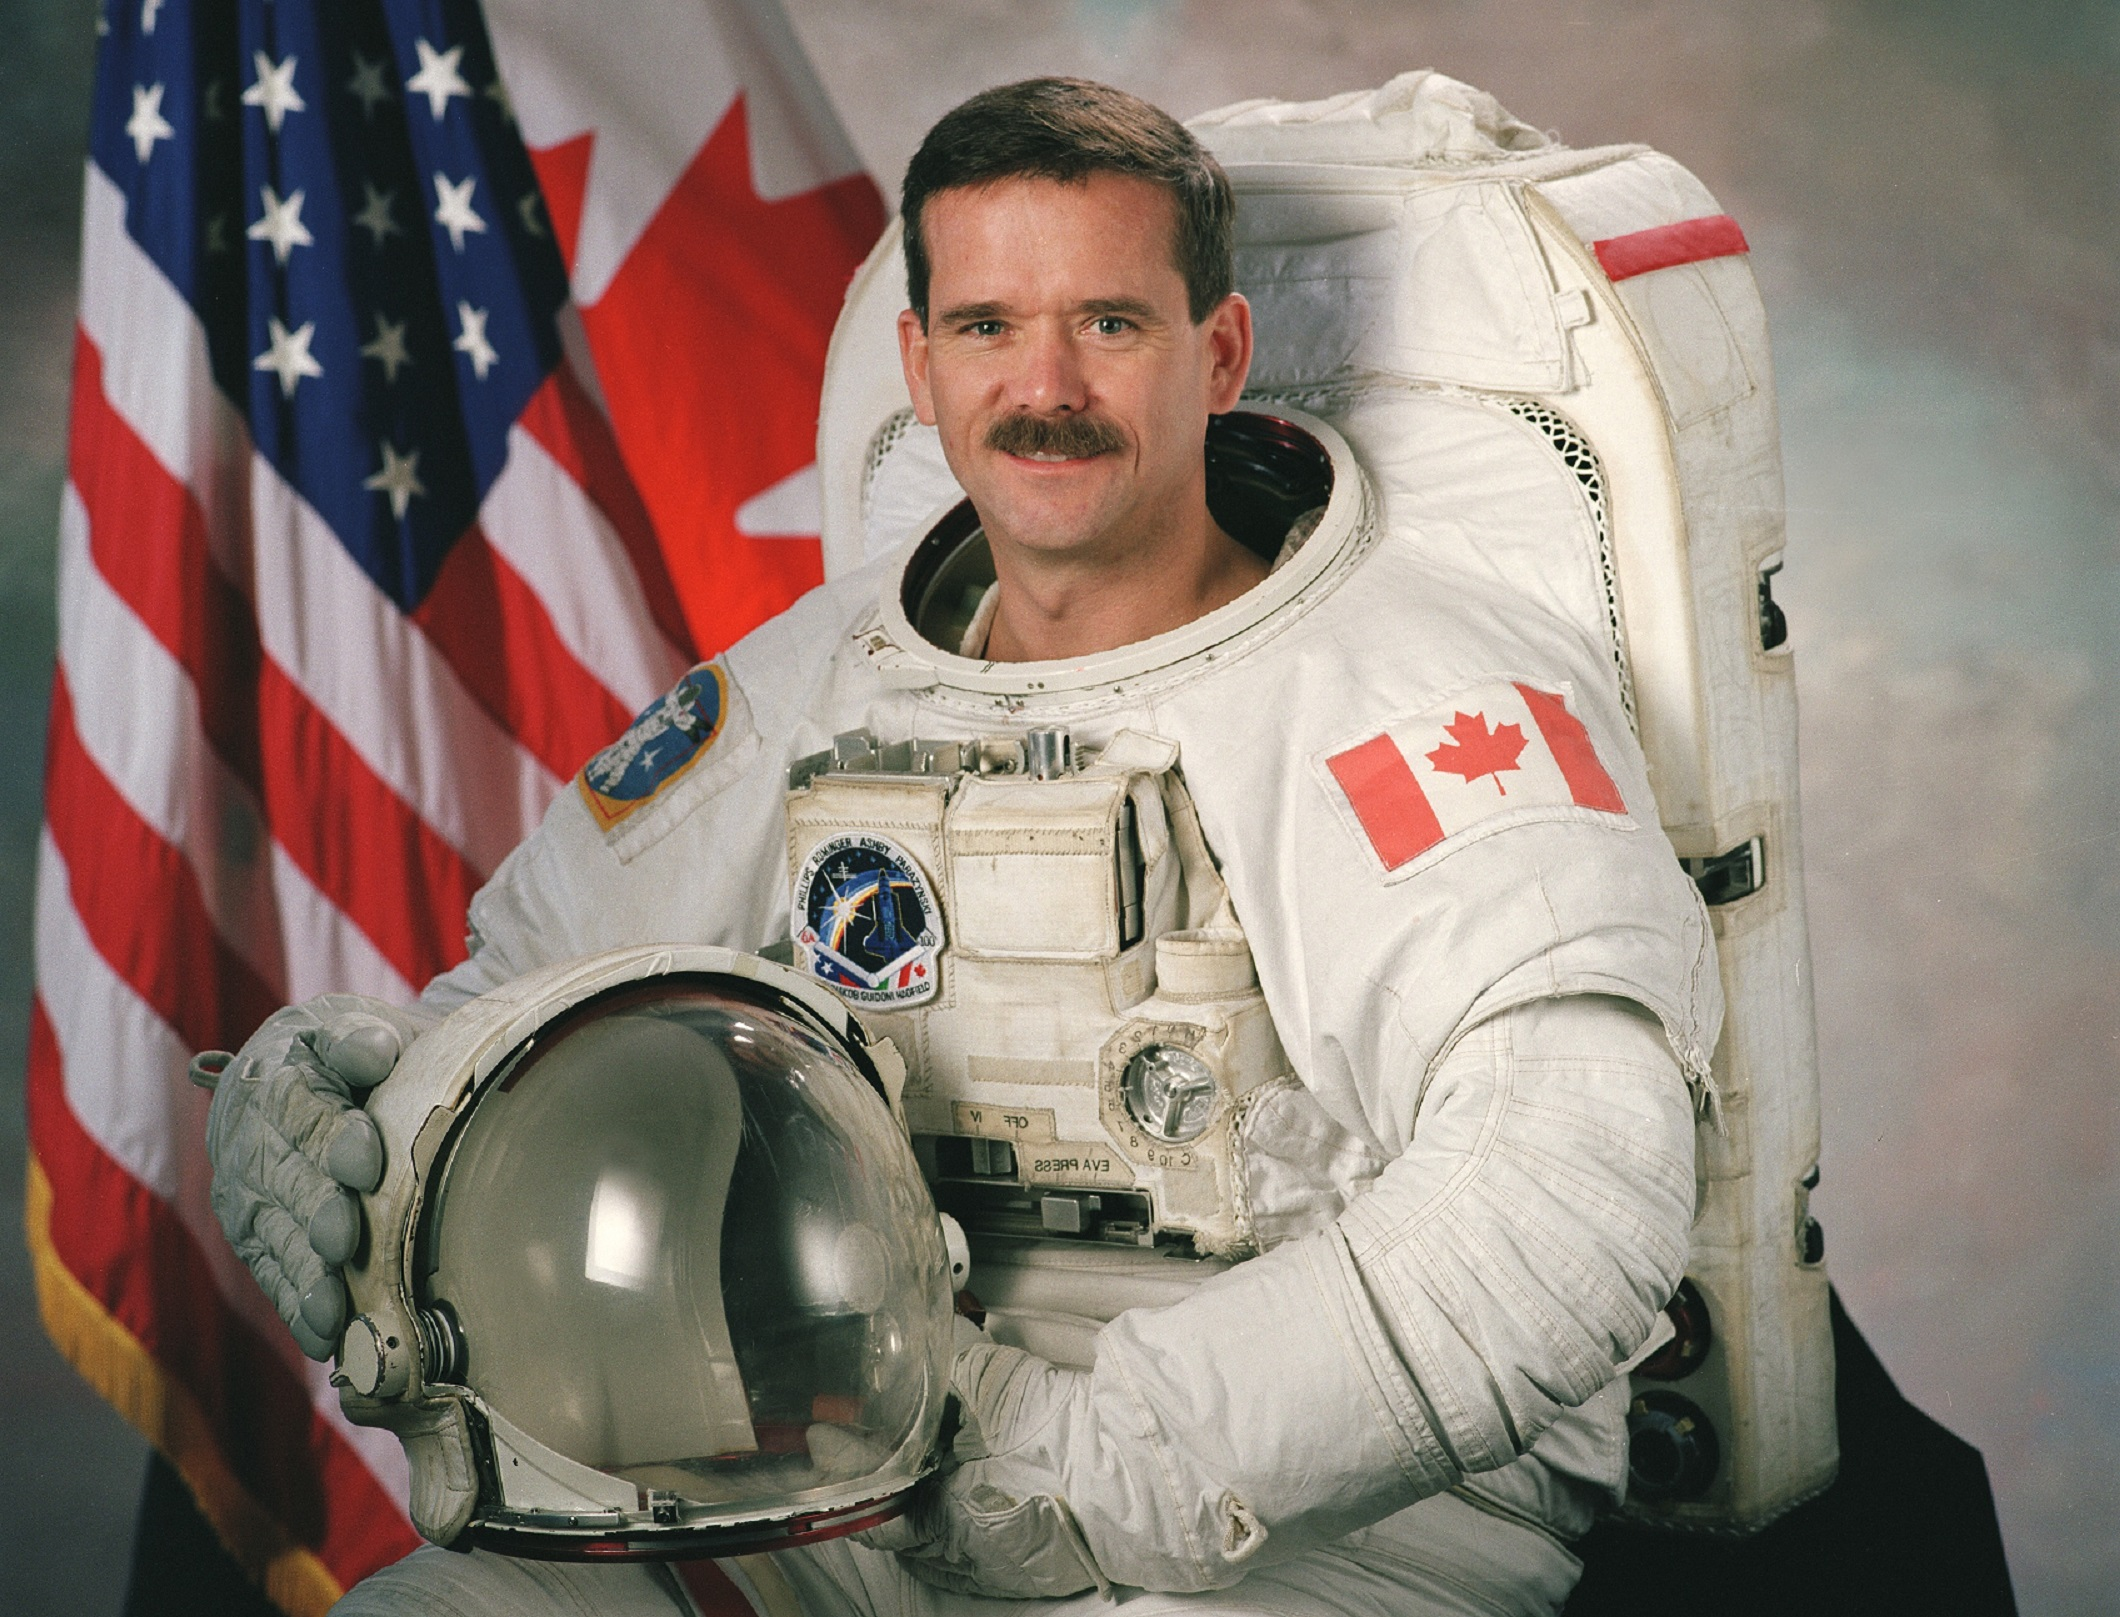 Image of *SIGNING ONLY* Astronaut Chris Hadfield